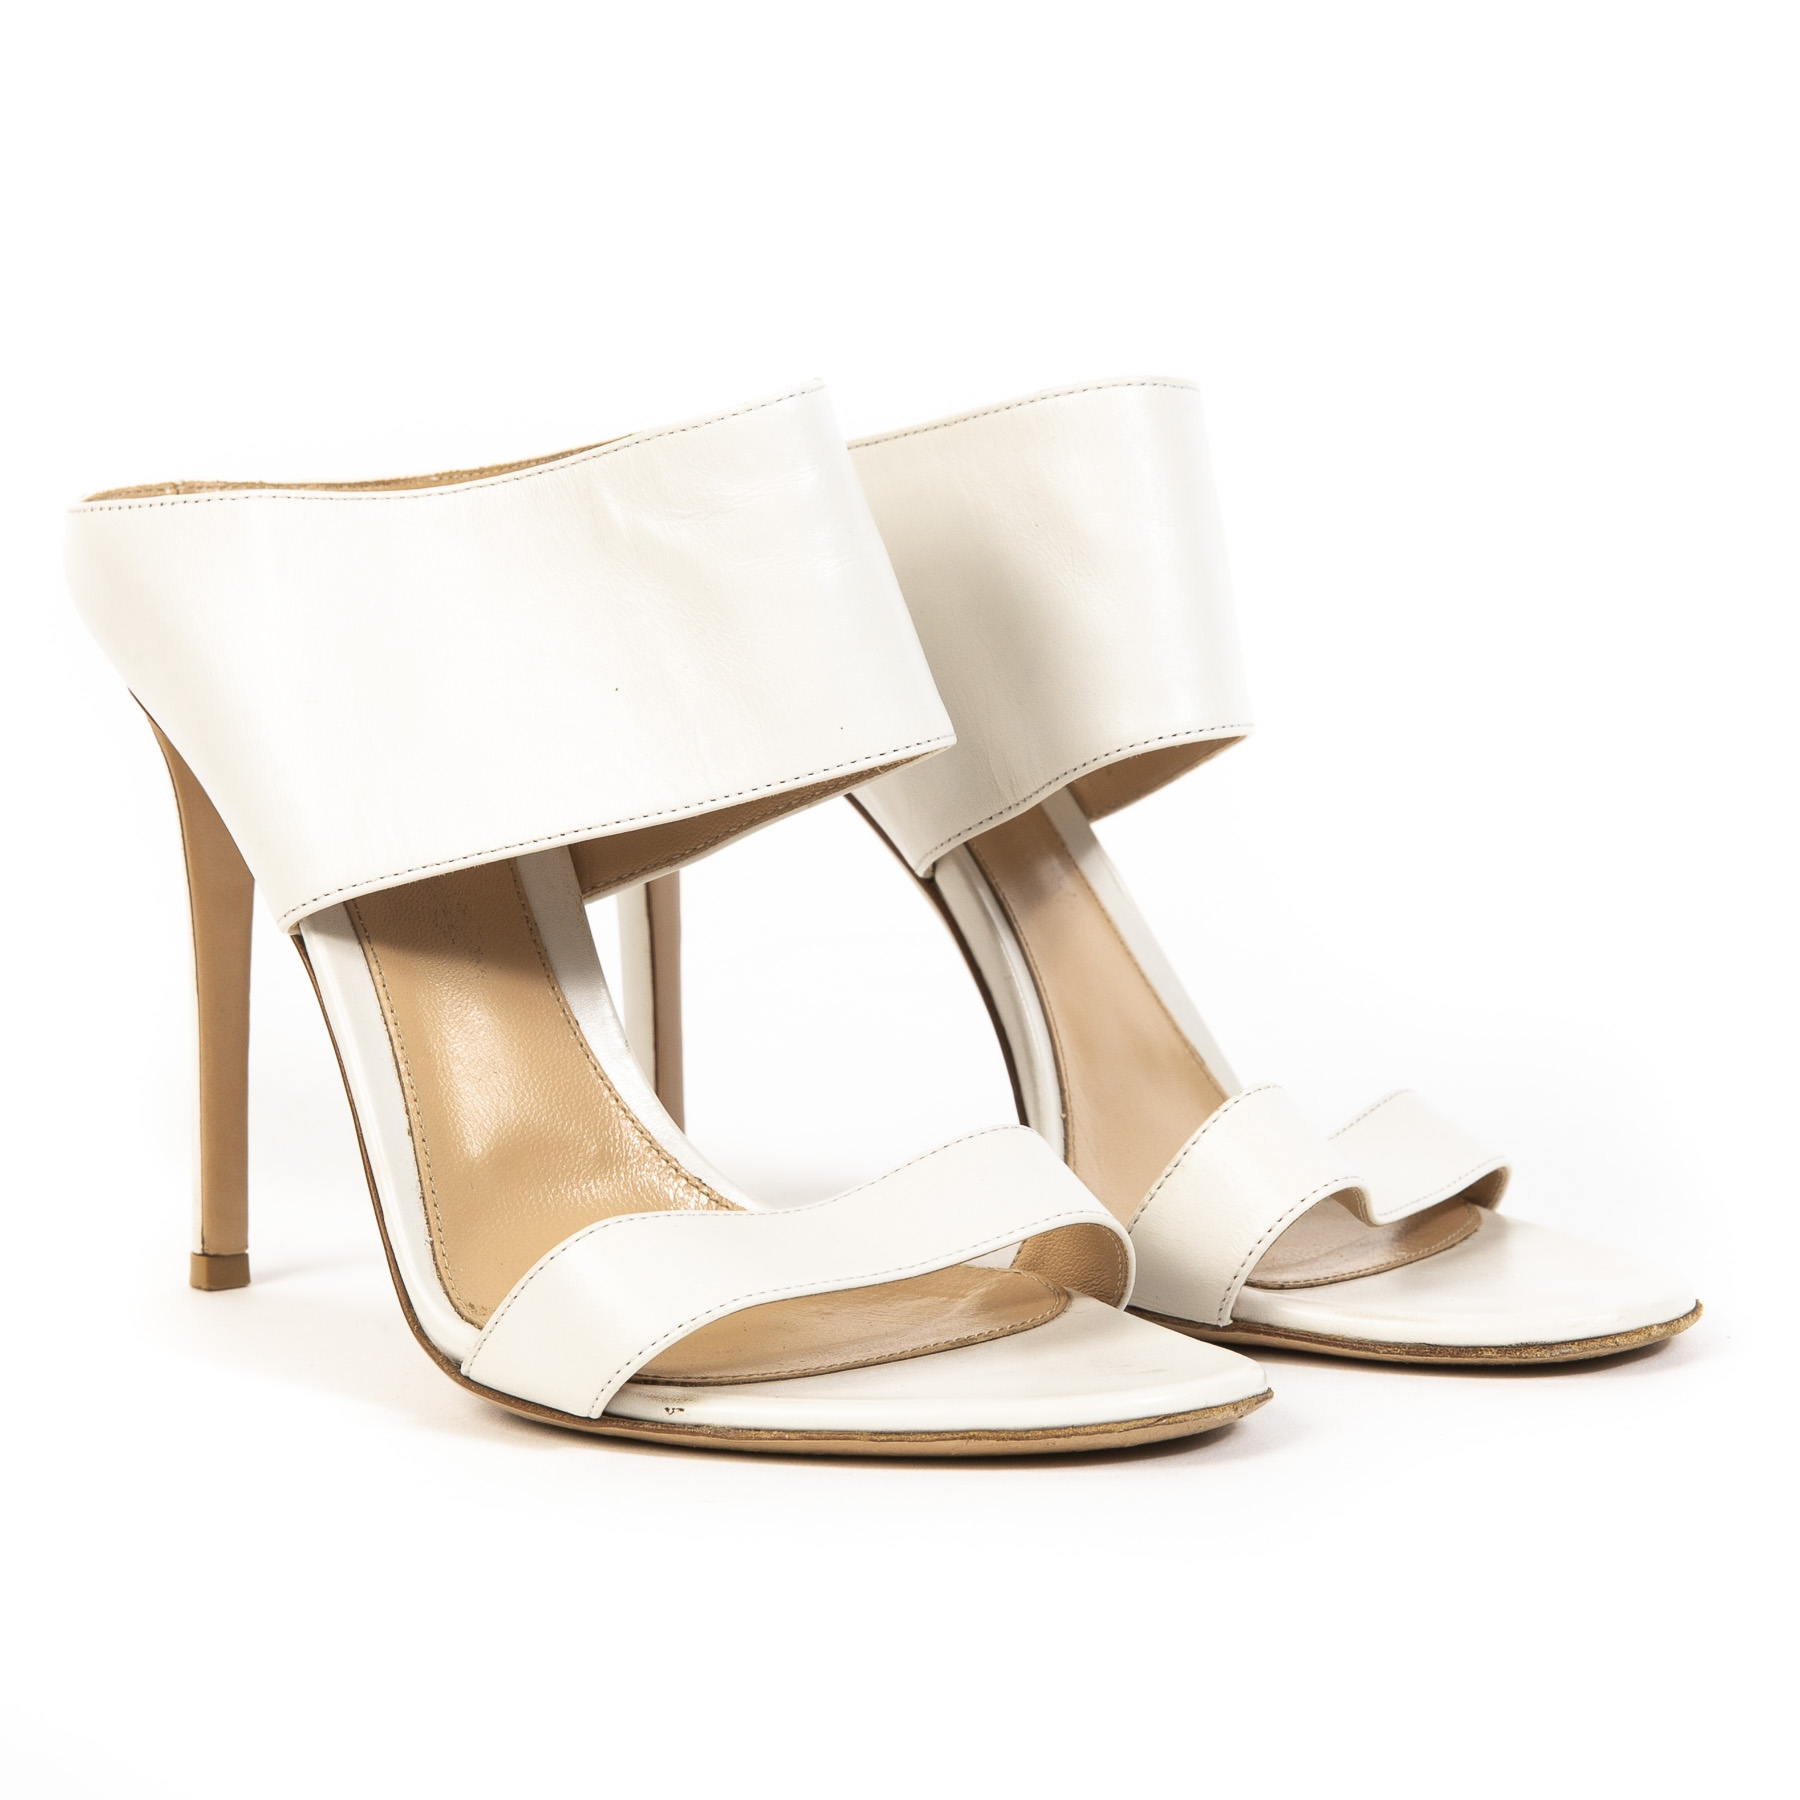 Buy authentic secondhand Gianvito Rossi shoes at labellov webshop.